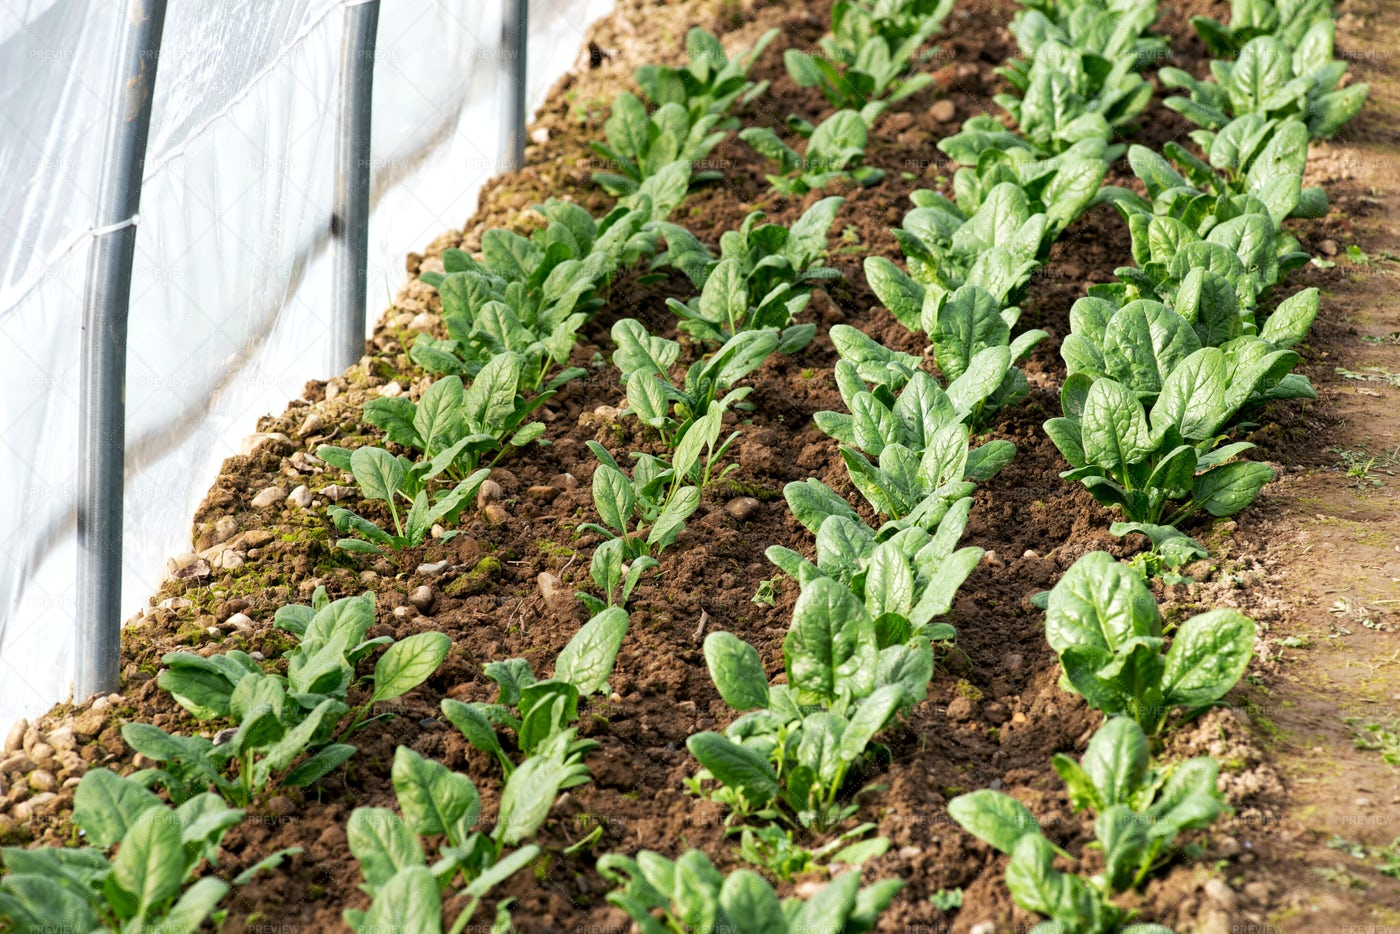 Spinach Growing In A Greenhouse: Stock Photos